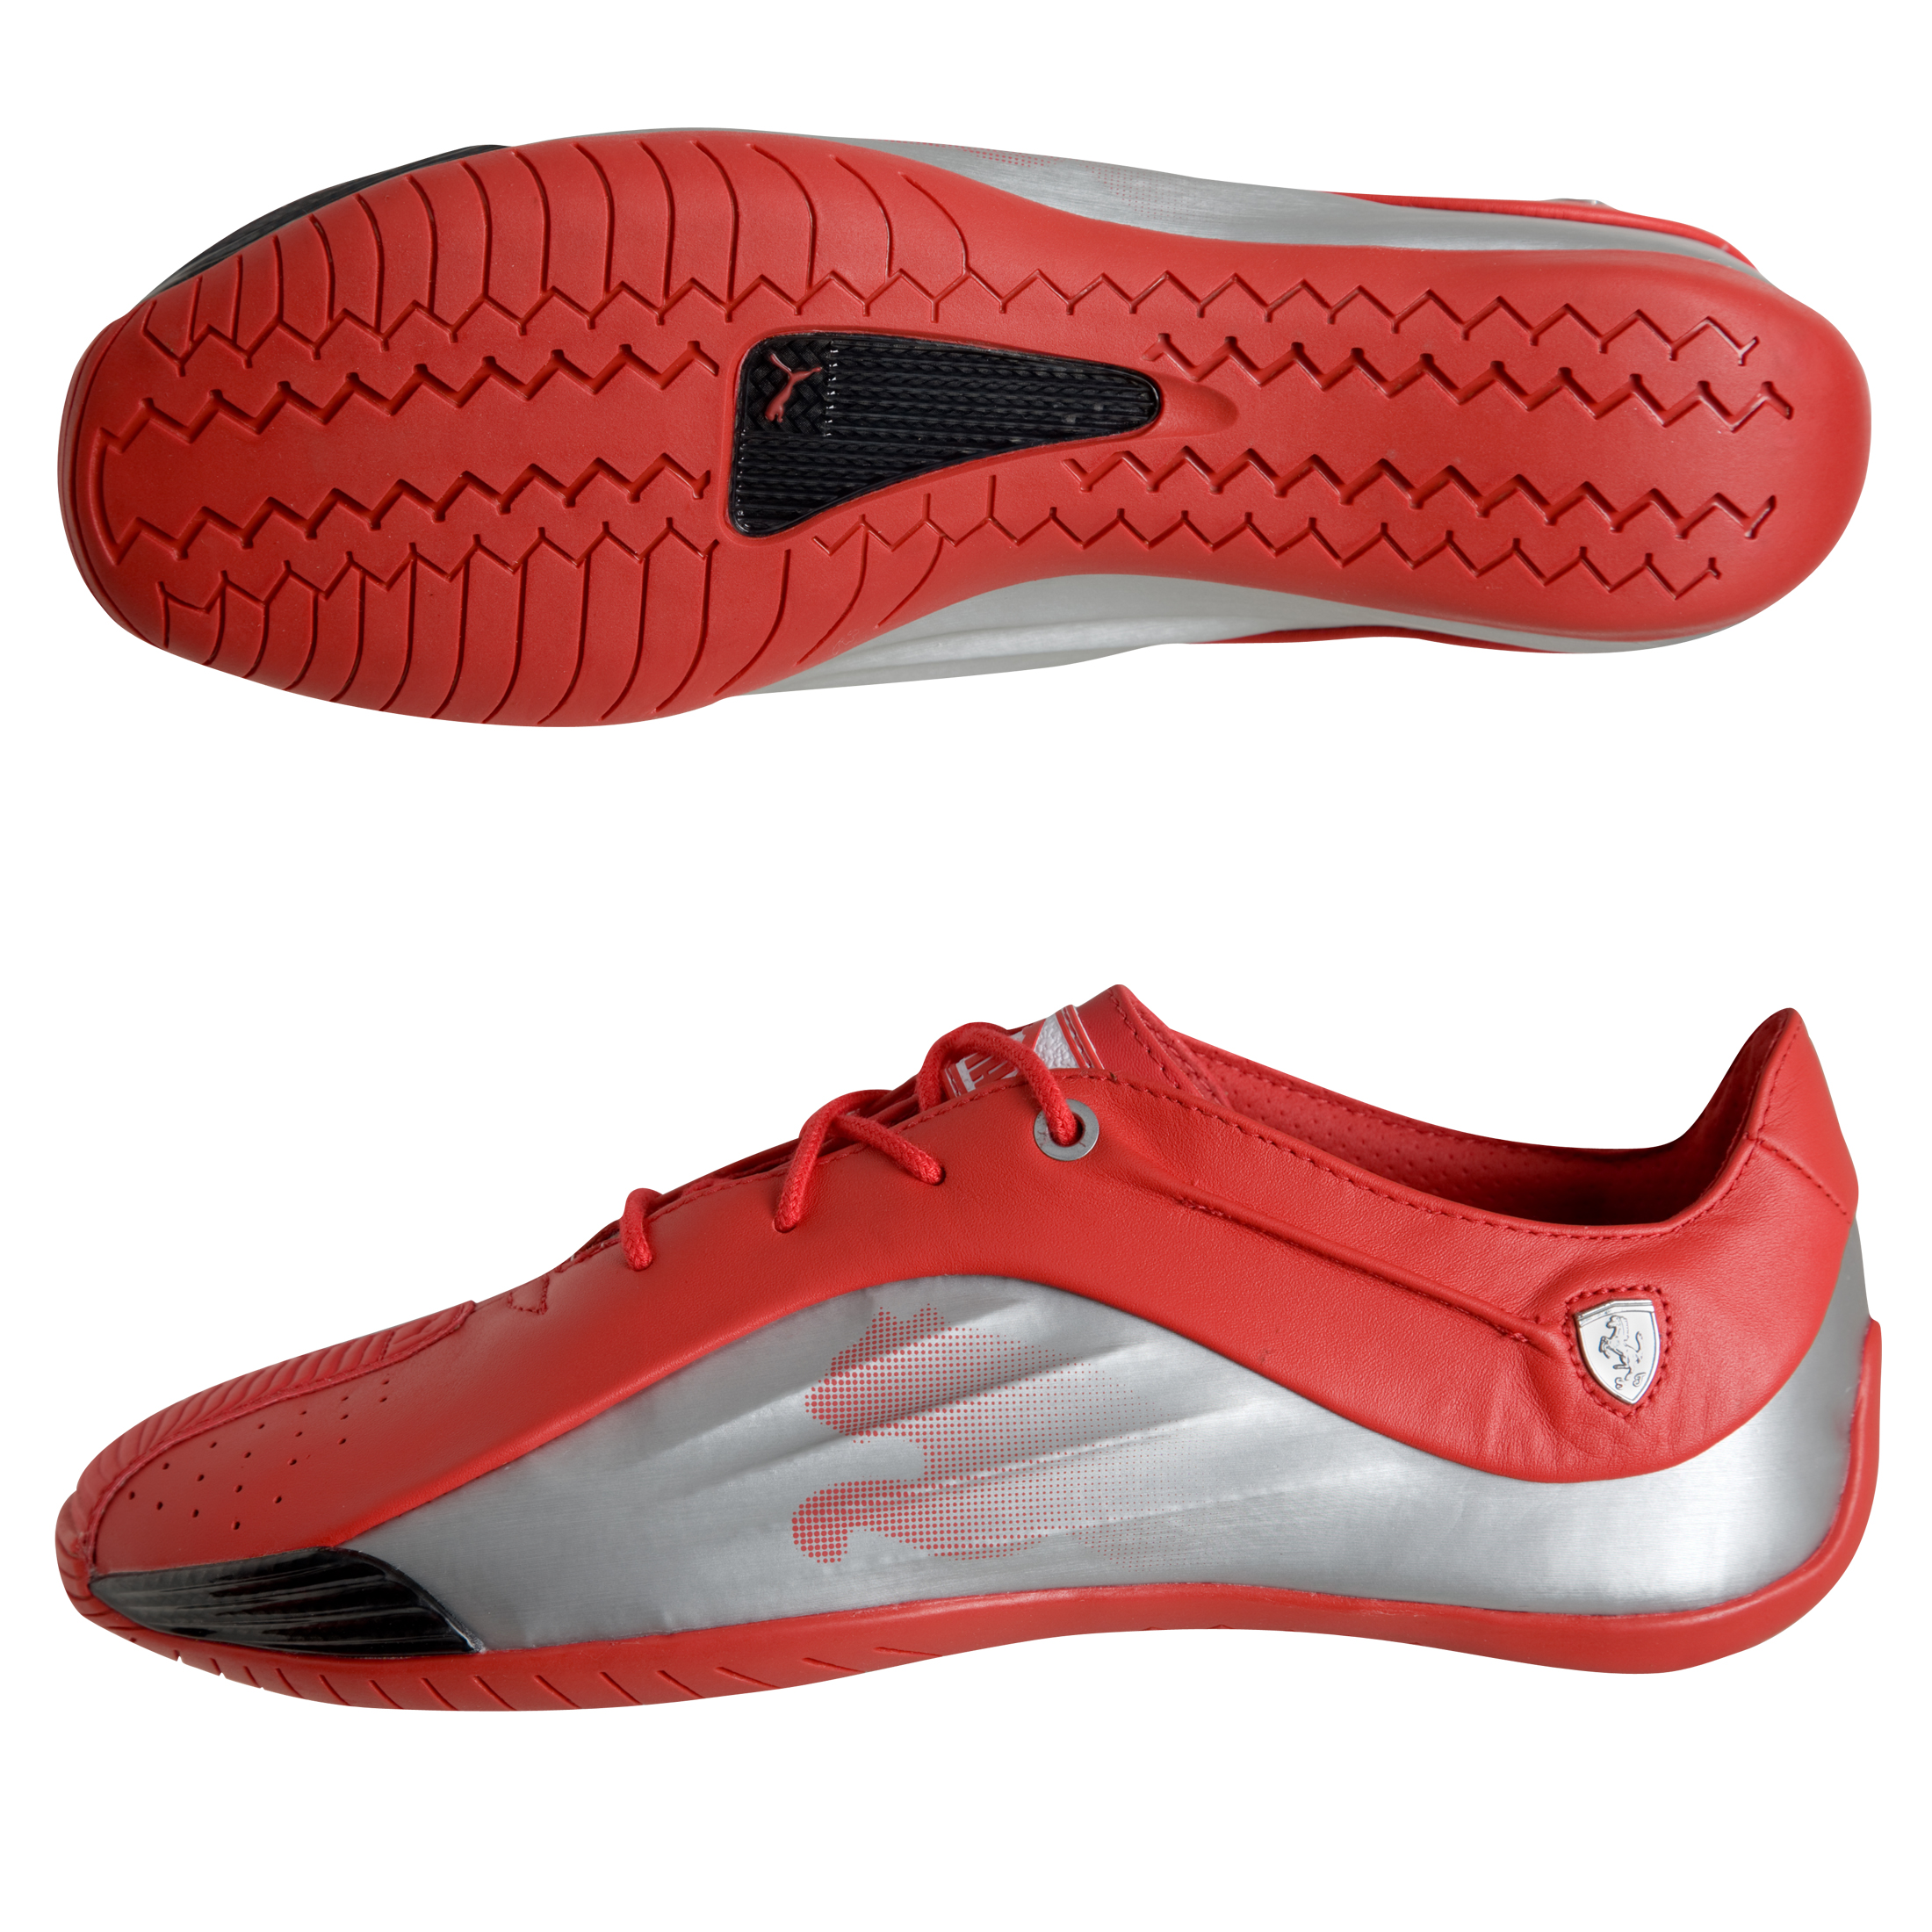 Scuderia Ferrari Puma Kraft Trainers - Rosso Corsa/Metallic Silver